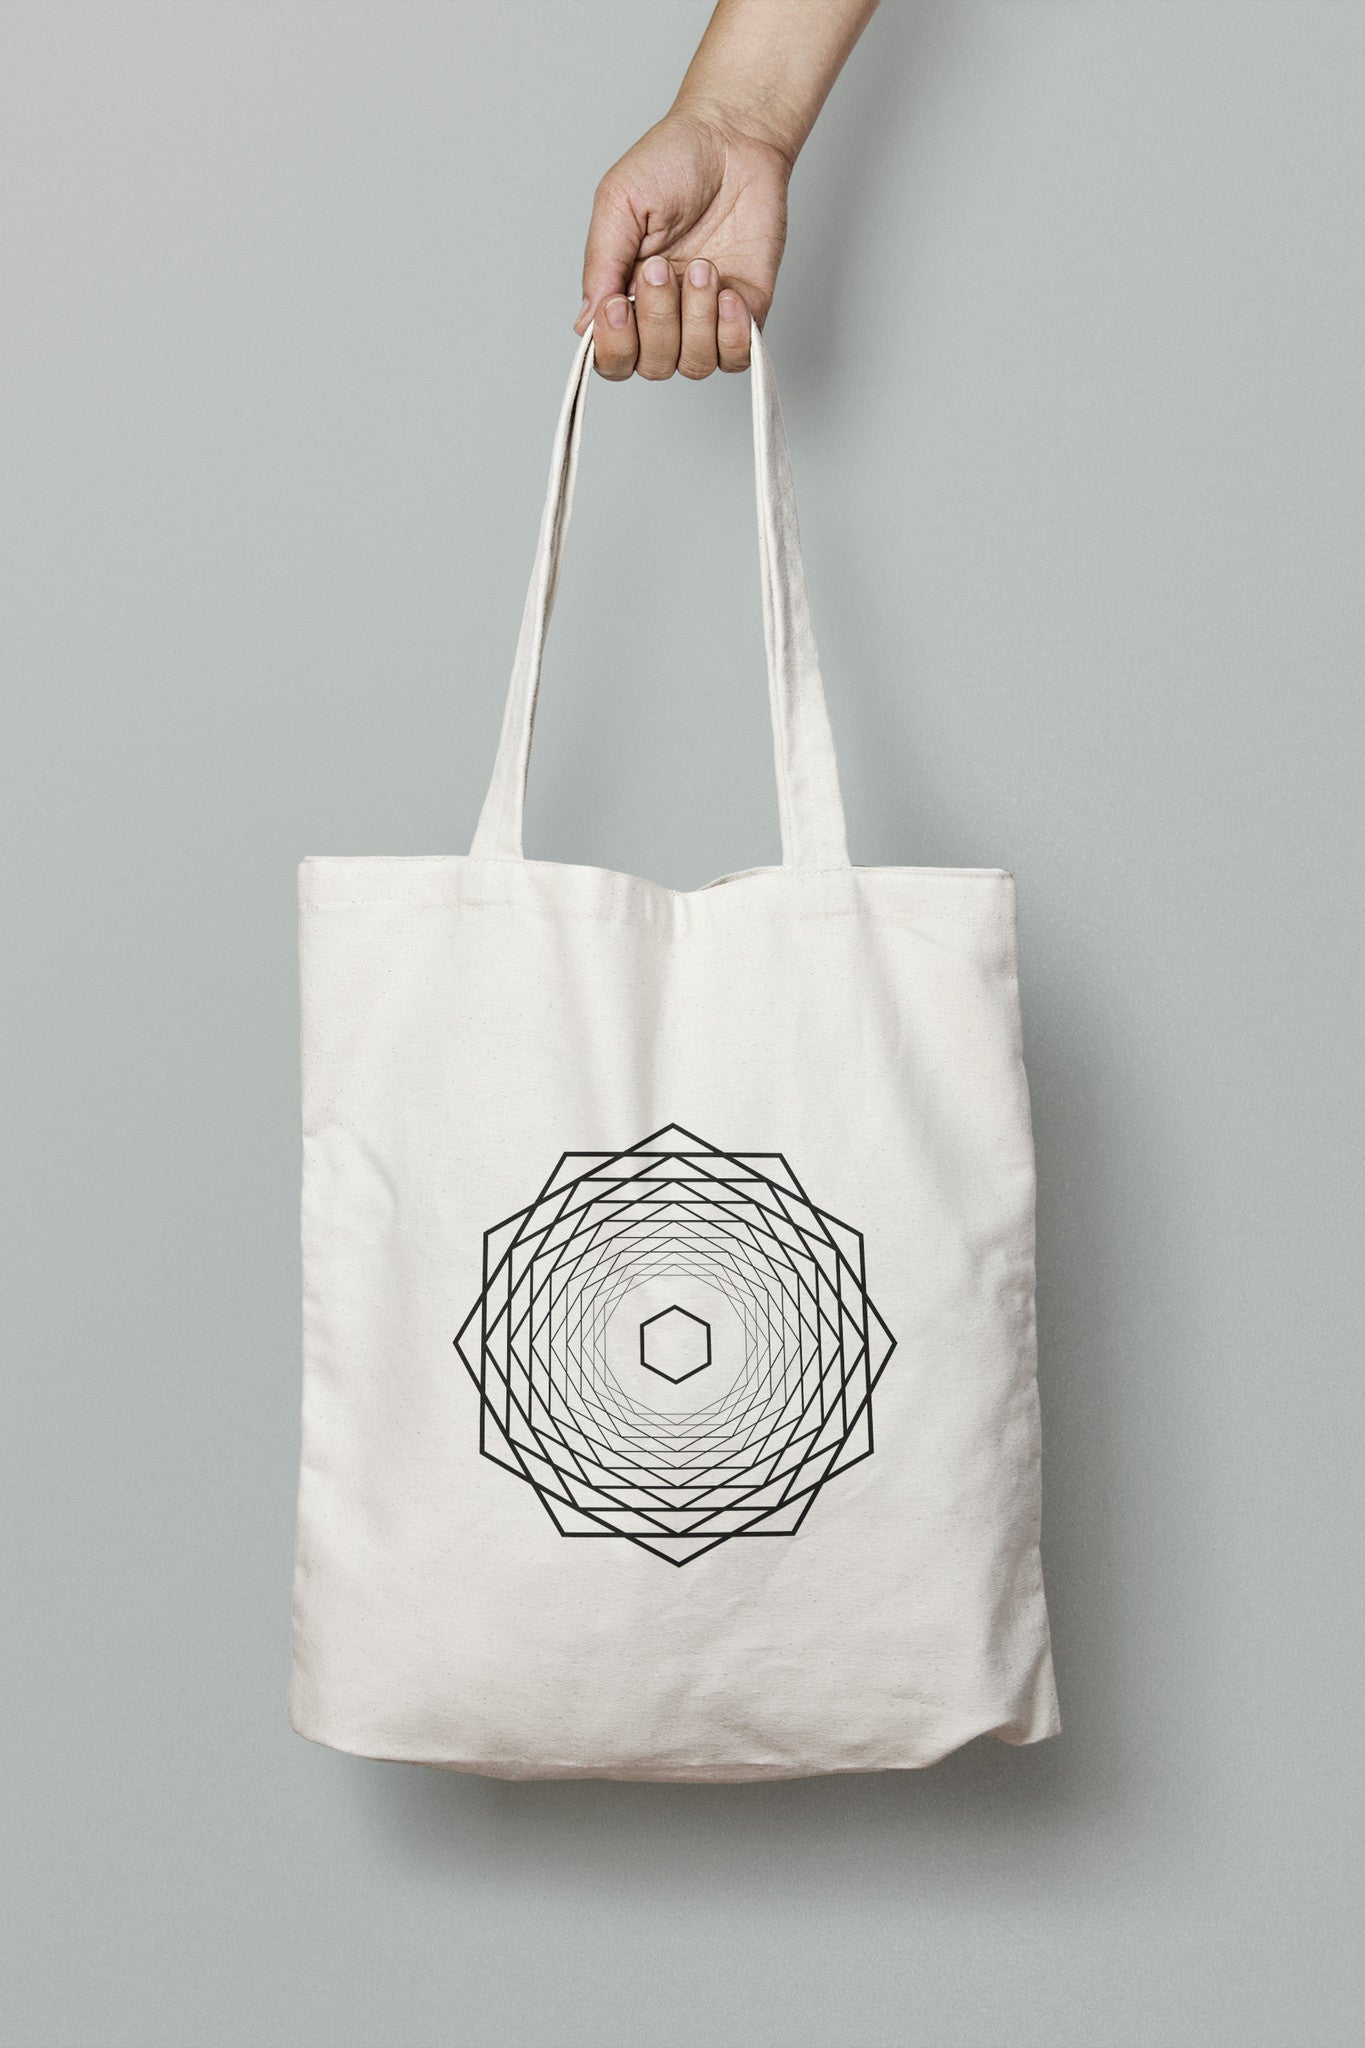 Bloom Tote by emerybloom